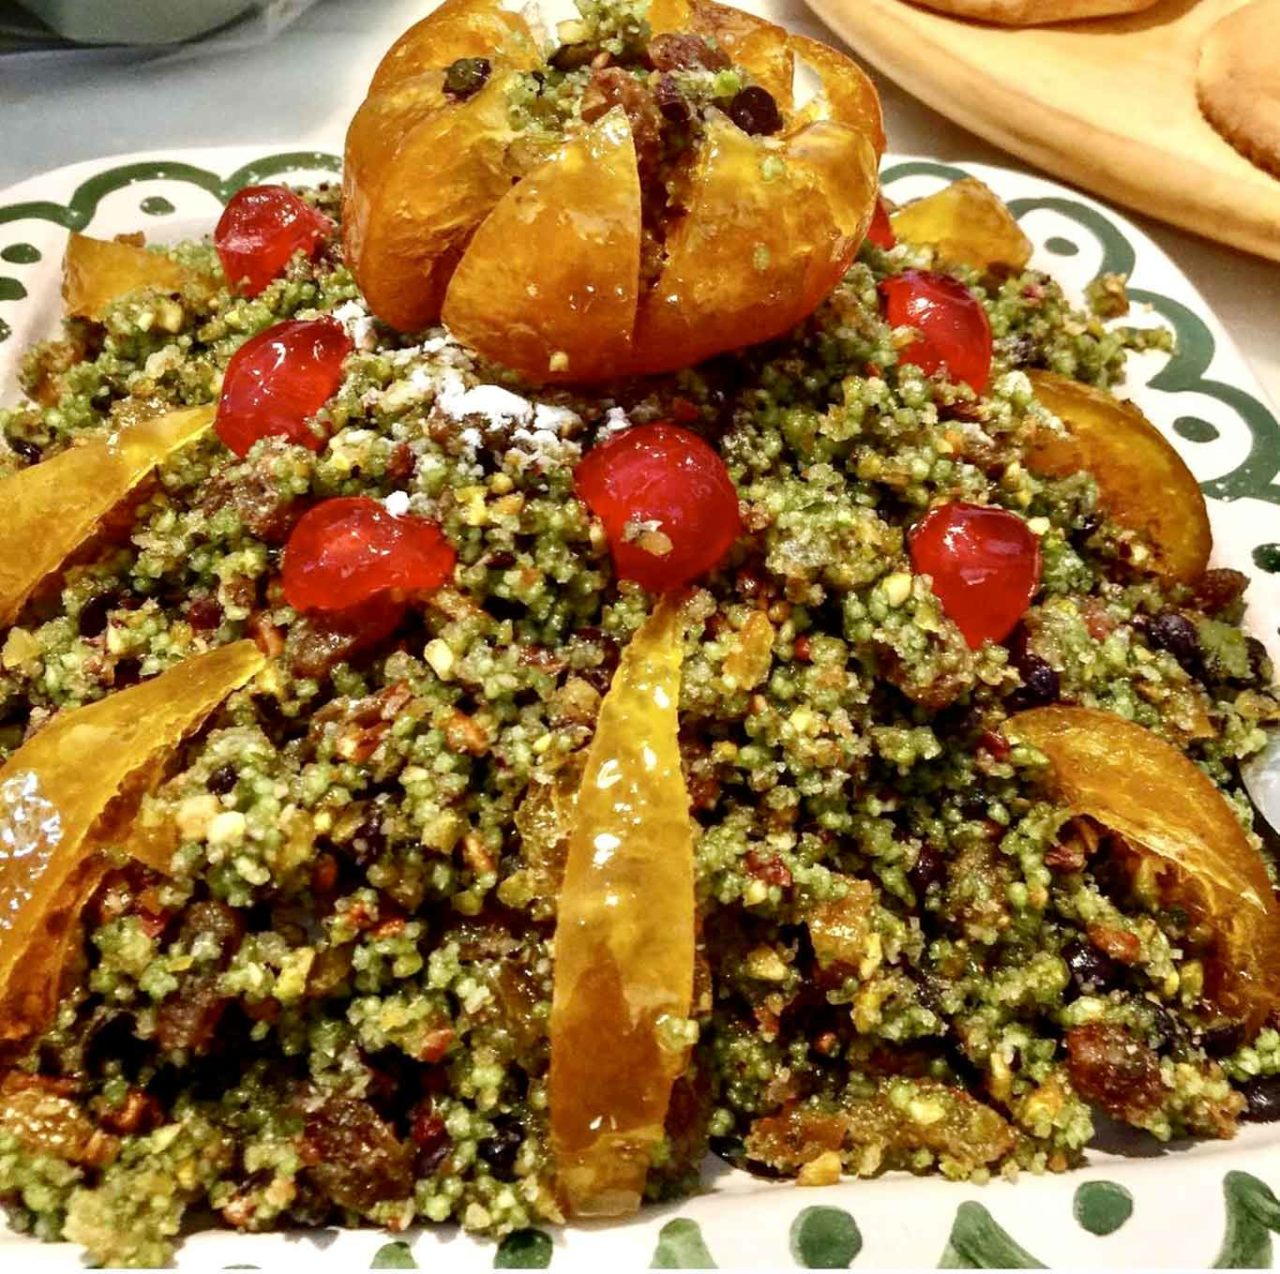 dolci antichi di Palermo cous cous dolce